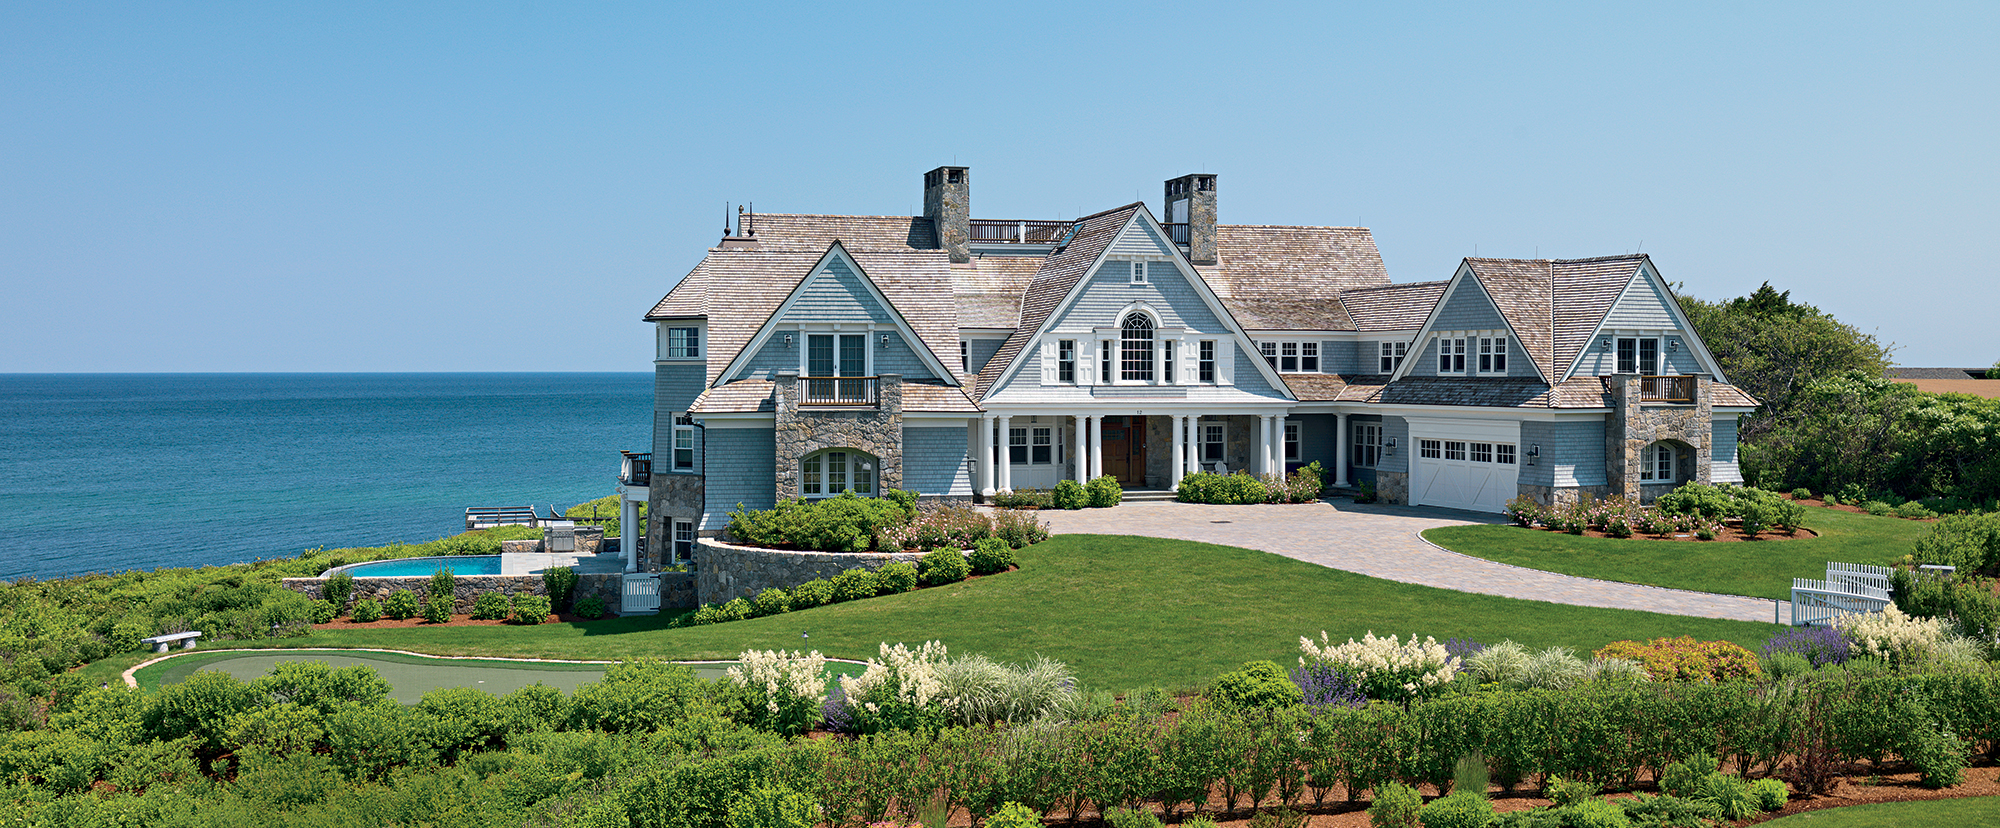 house at the cape overlooking the ocean